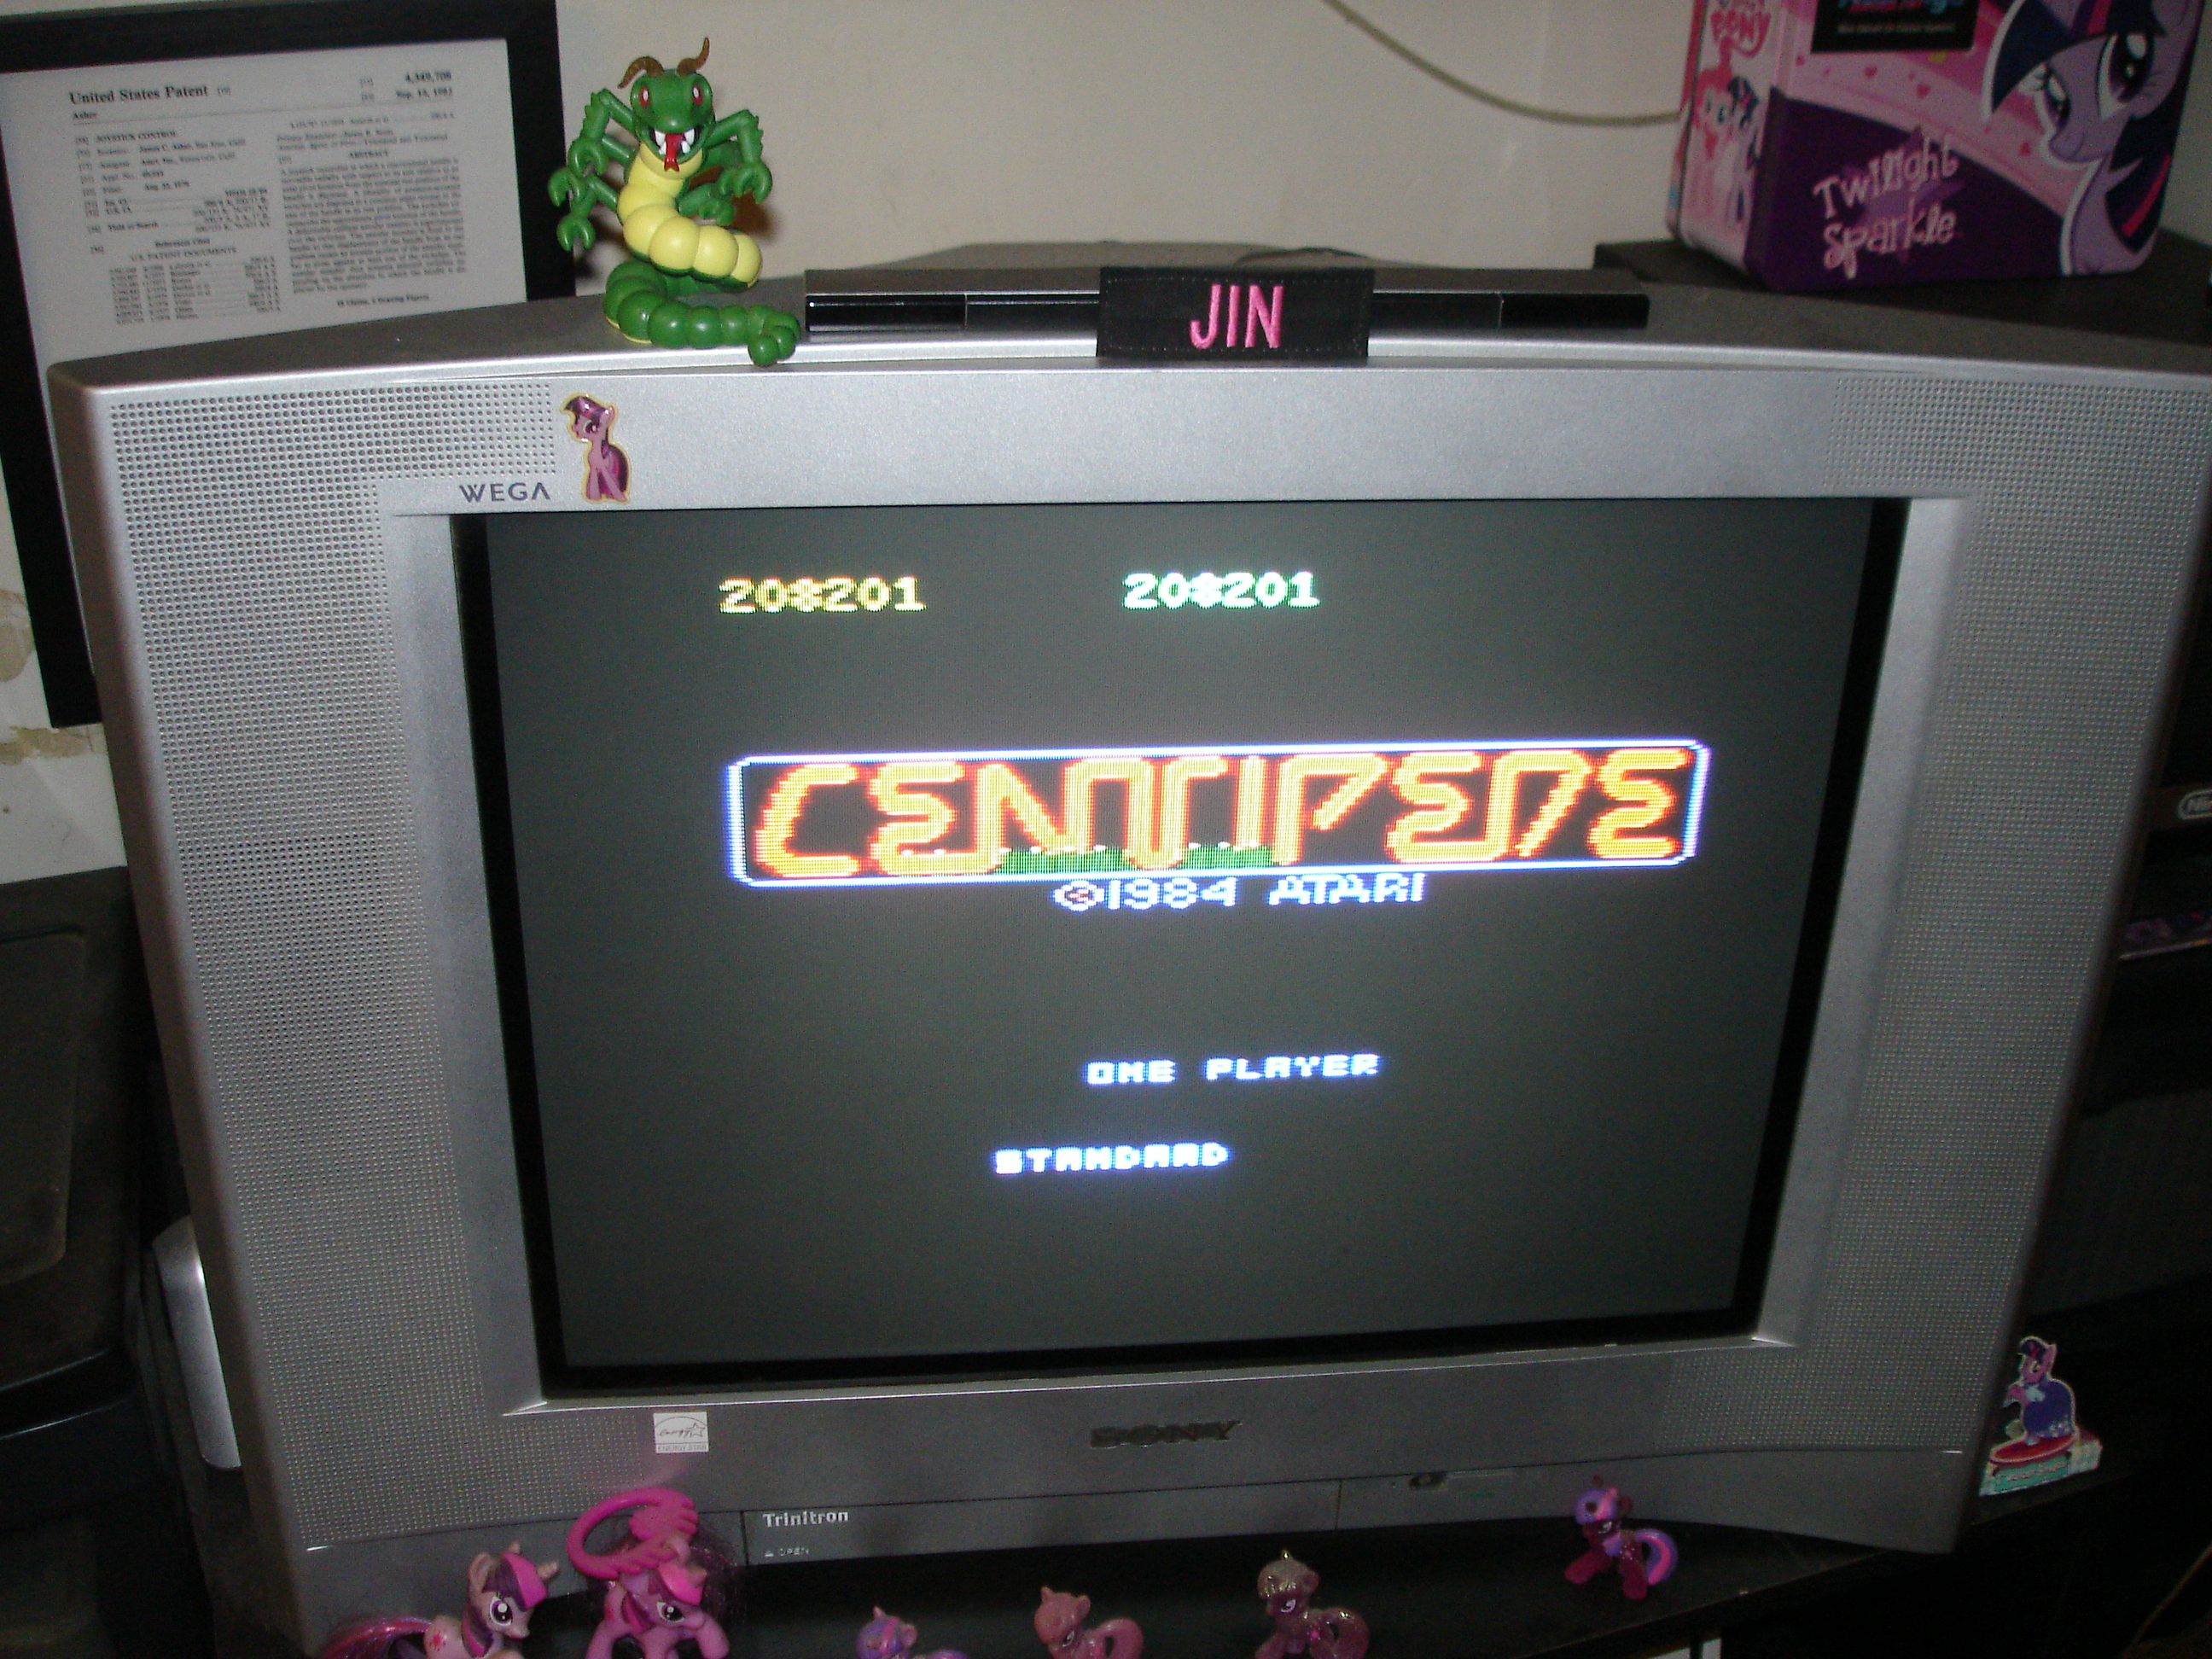 Centipede: Standard 208,201 points